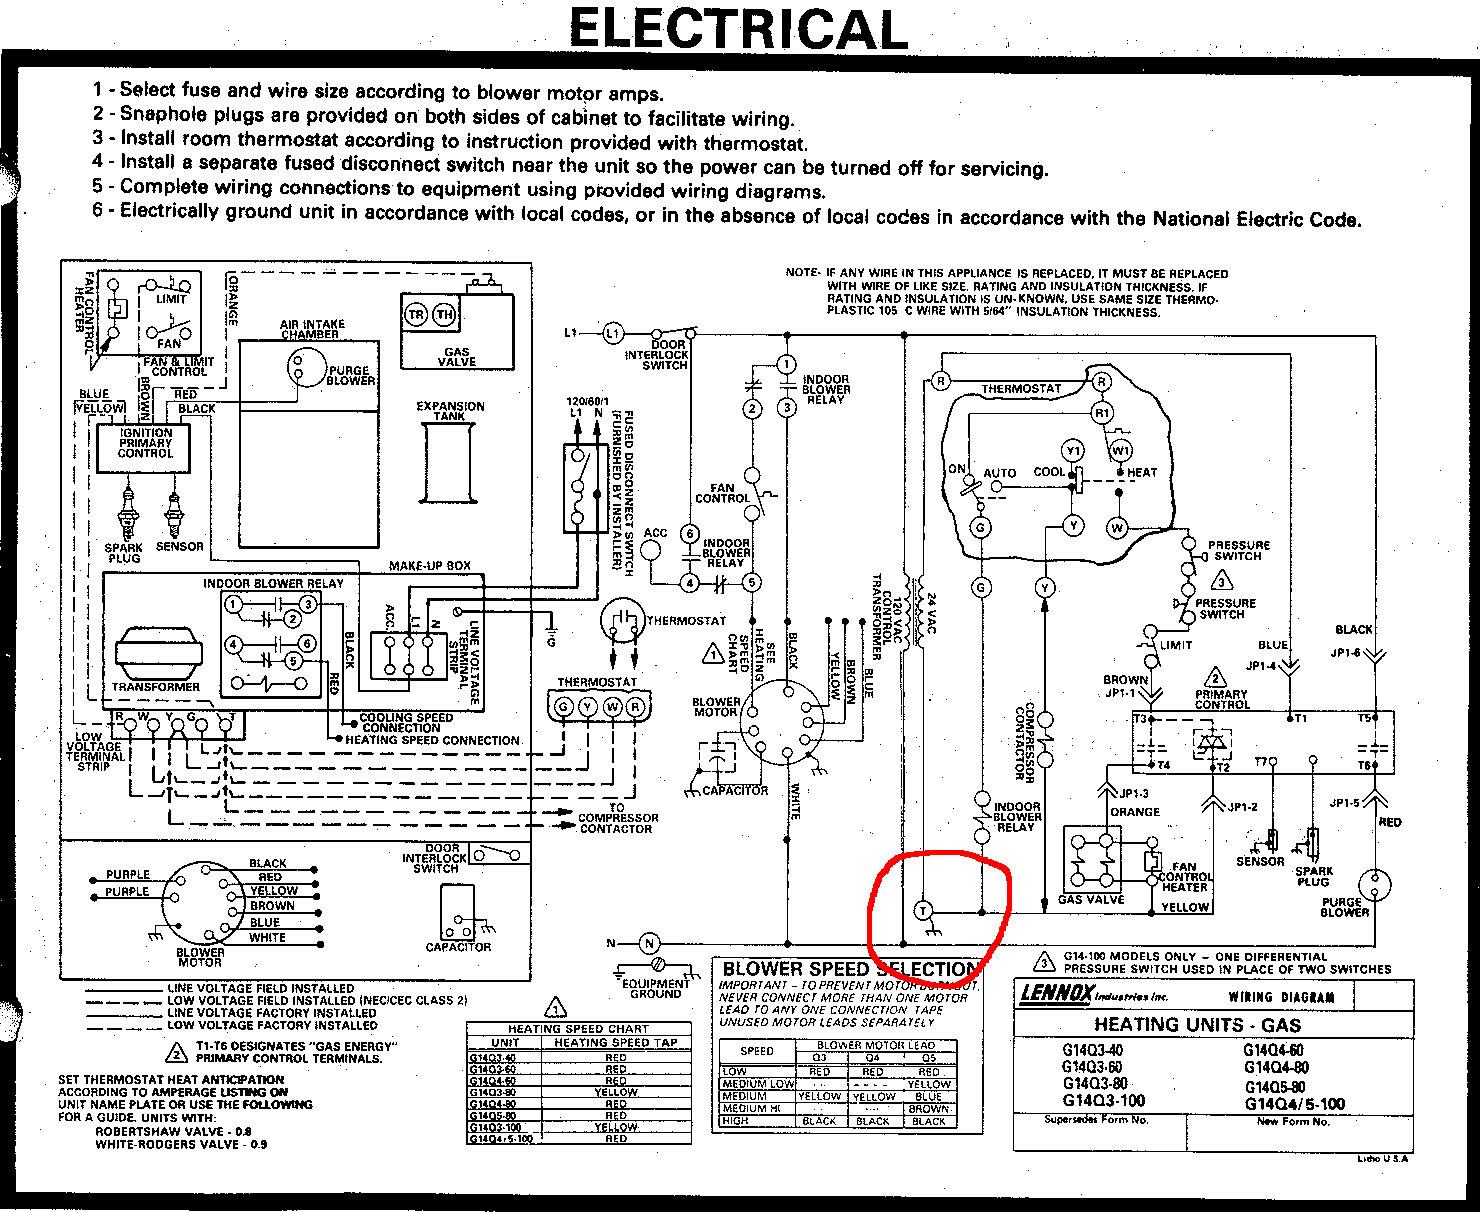 hvac wiring diagram thermostat stereo harness can i use the t terminal in my furnace as c for a wifi